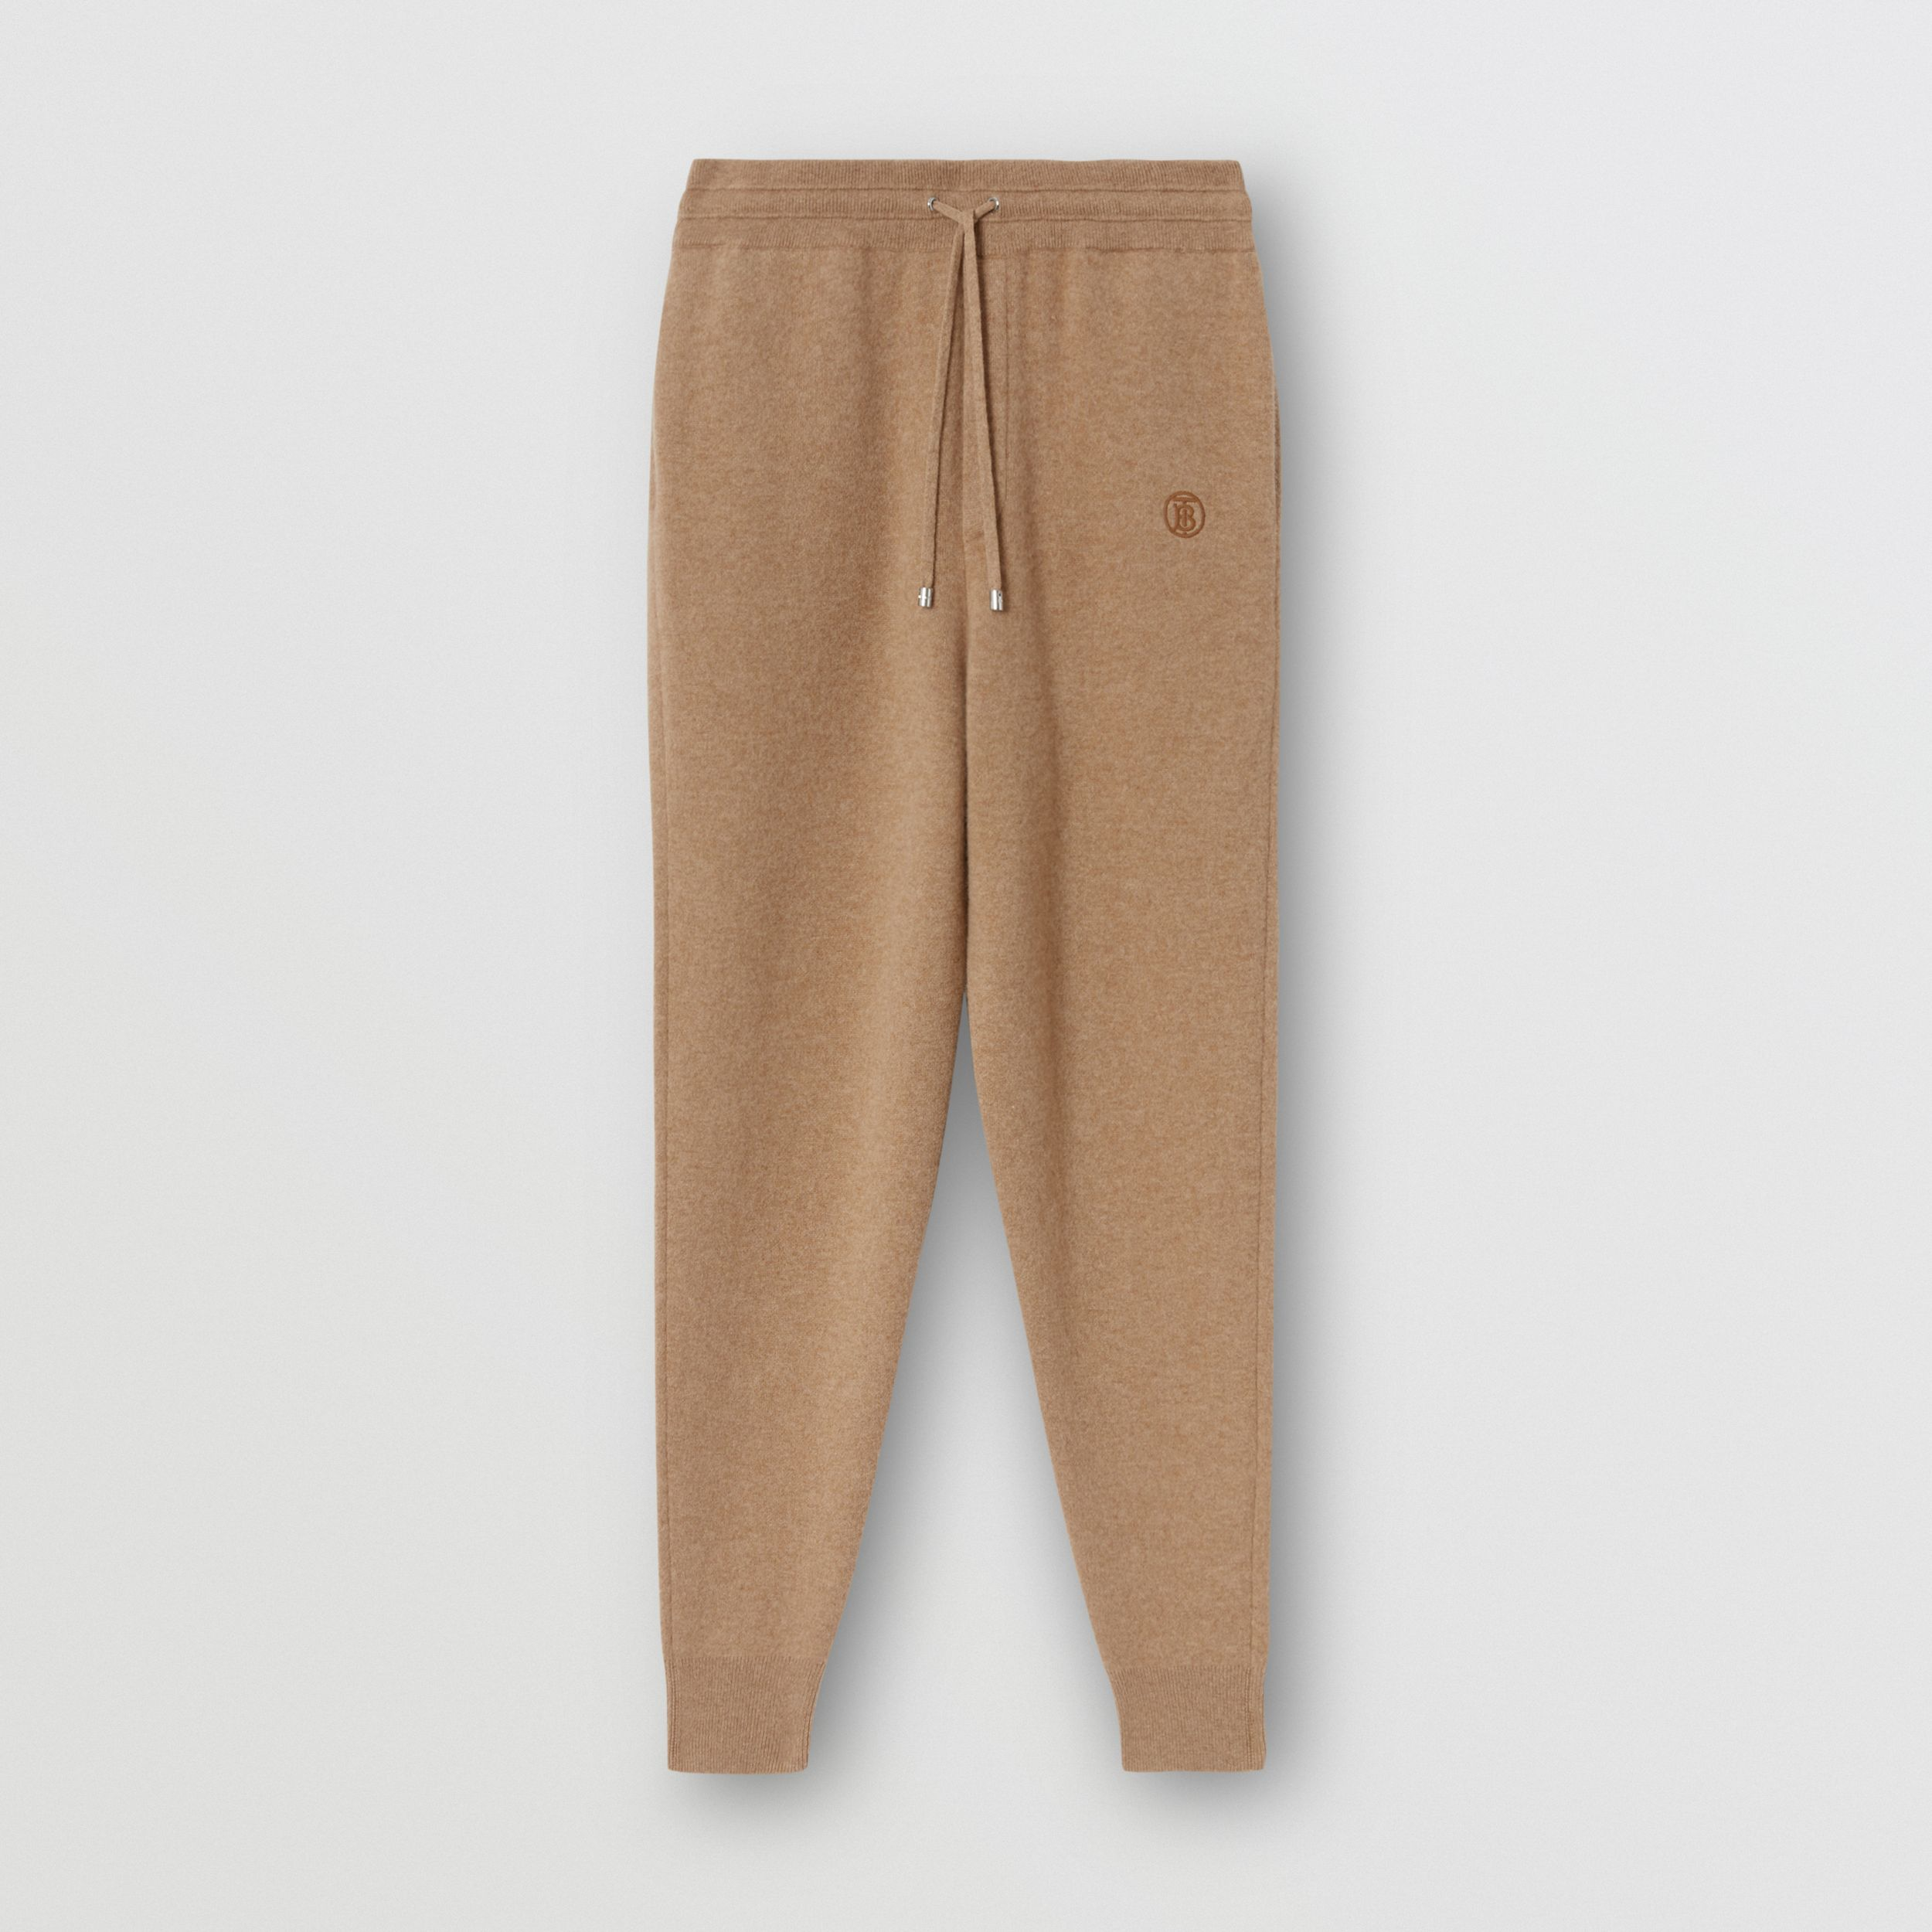 Monogram Motif Cashmere Blend Jogging Pants in Pale Coffee - Men | Burberry - 4